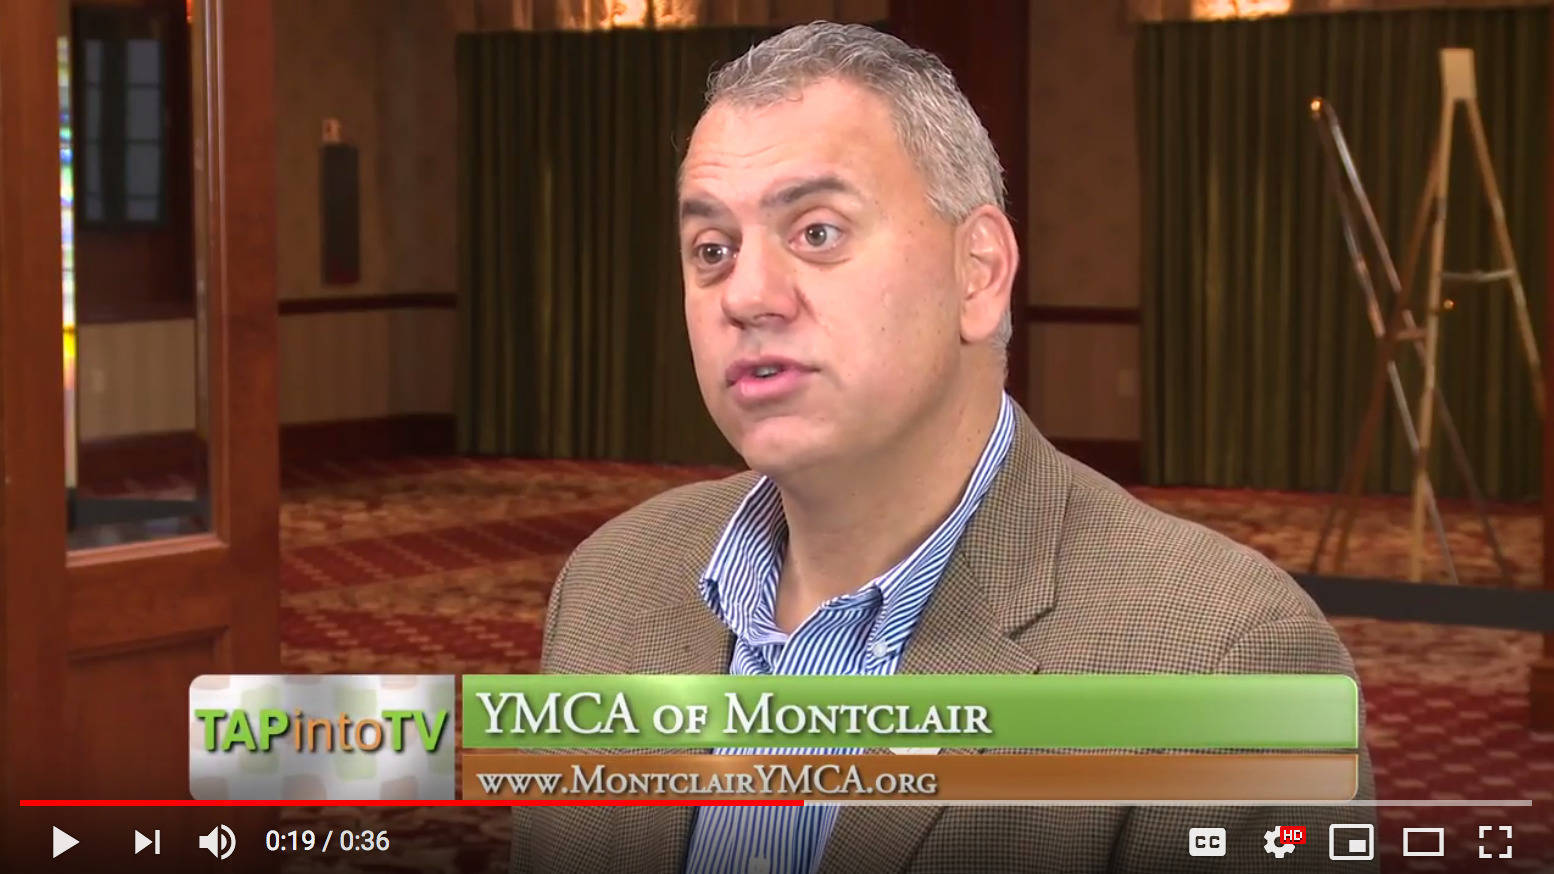 YMCA of Montclair to Give Back to the Community with Annual 1891 Gala Fundraiser